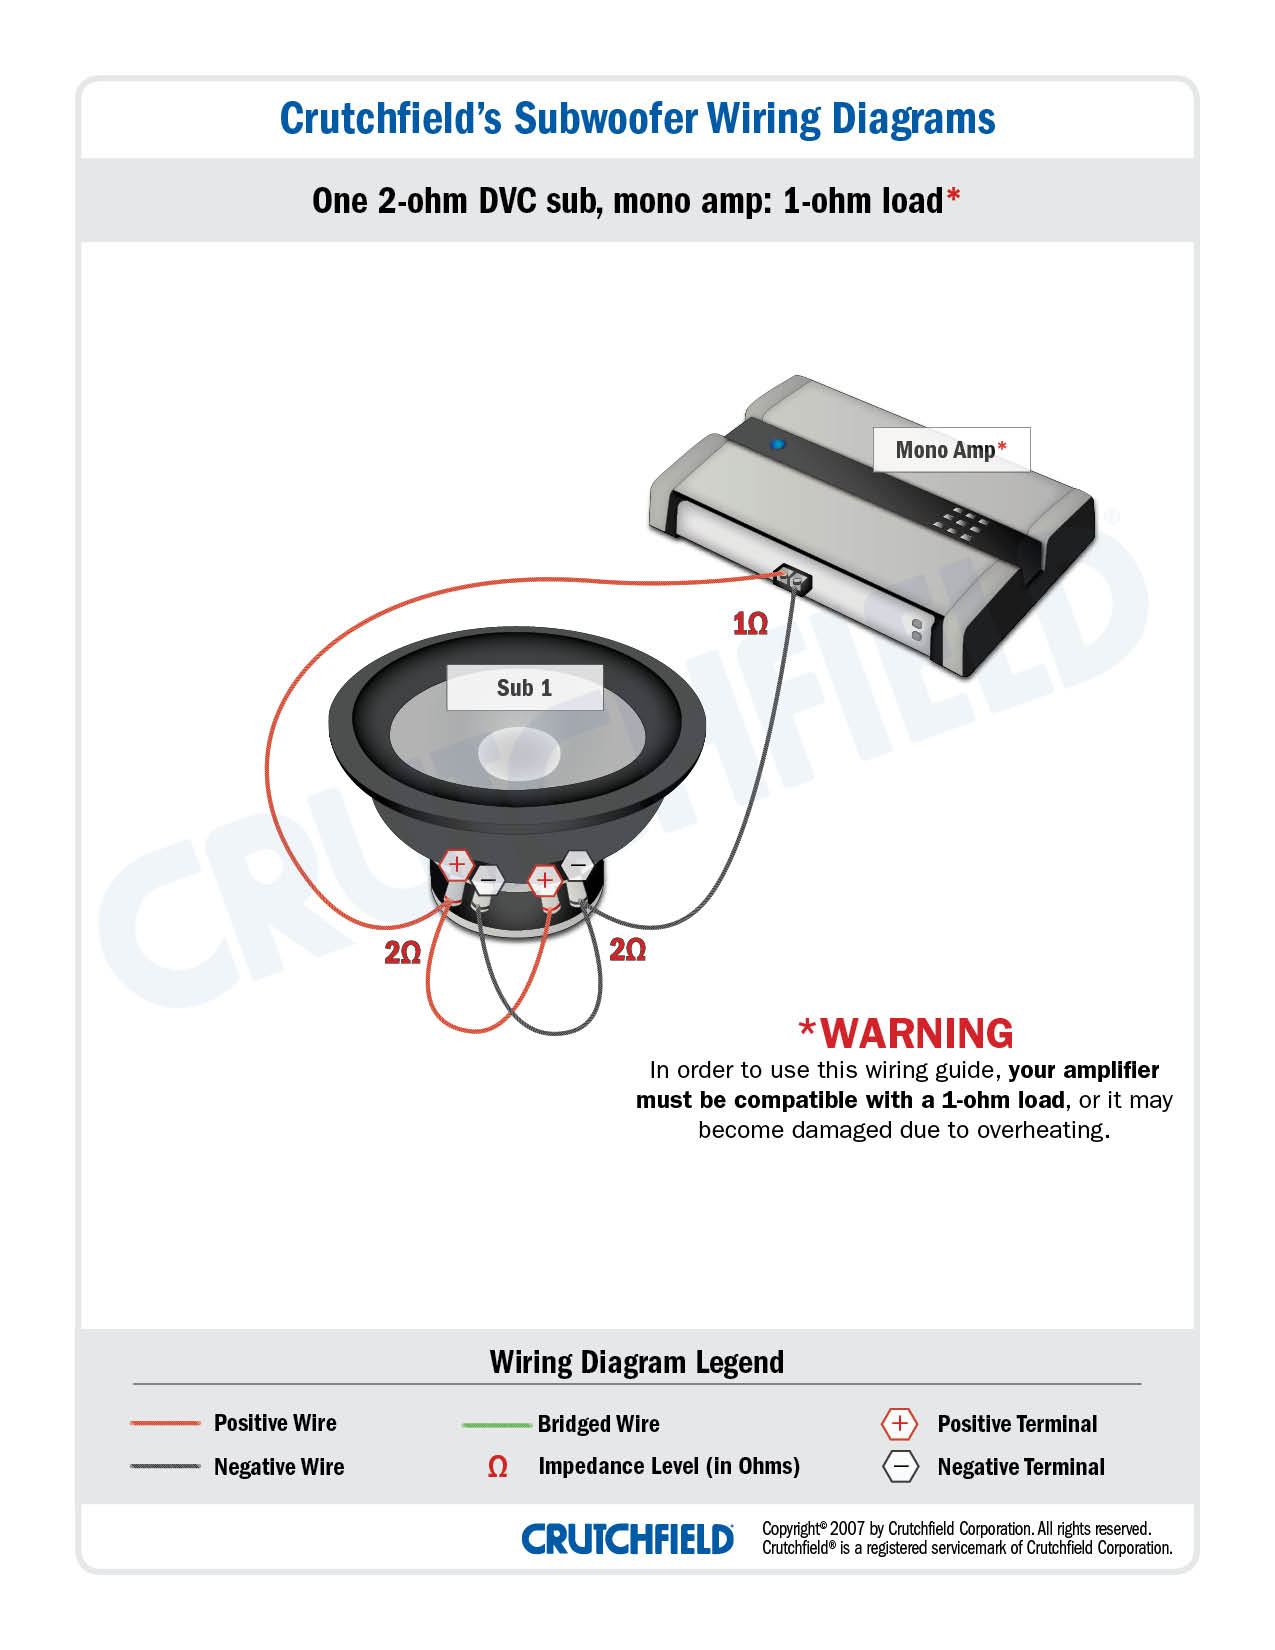 Sensational Subwoofer Wiring Diagrams How To Wire Your Subs Wiring 101 Photwellnesstrialsorg